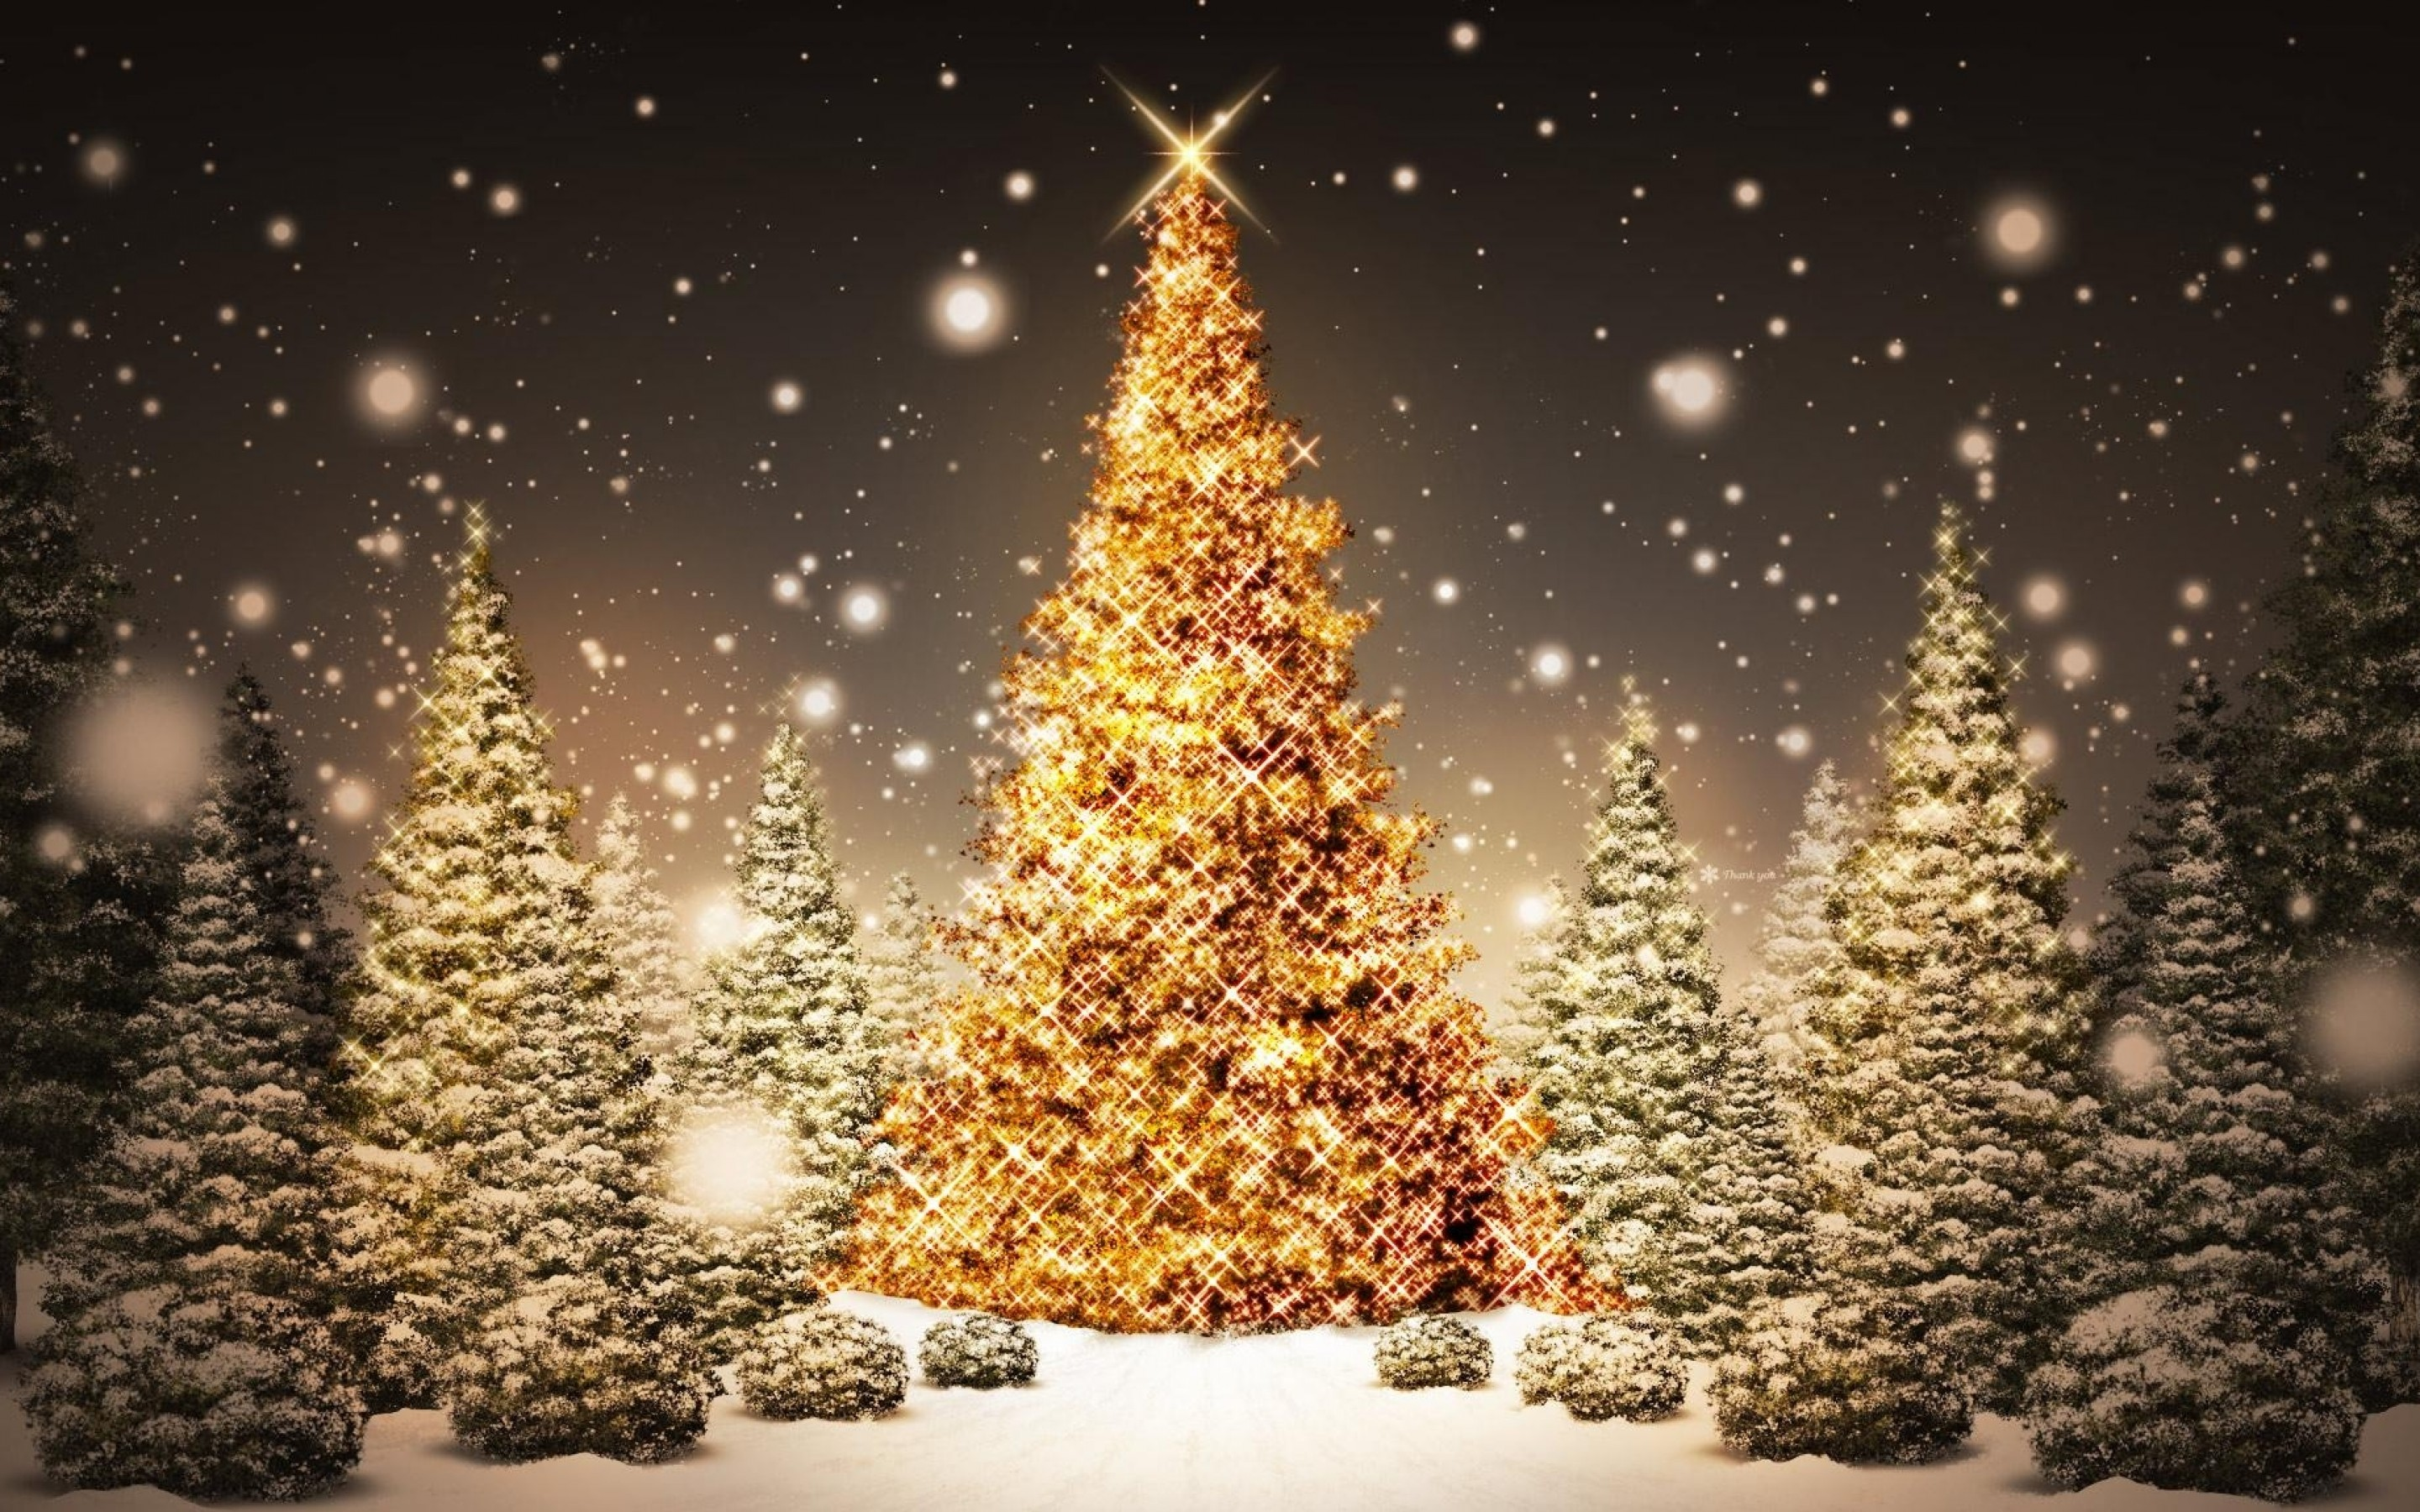 merry Christmas beautiful wallpapers